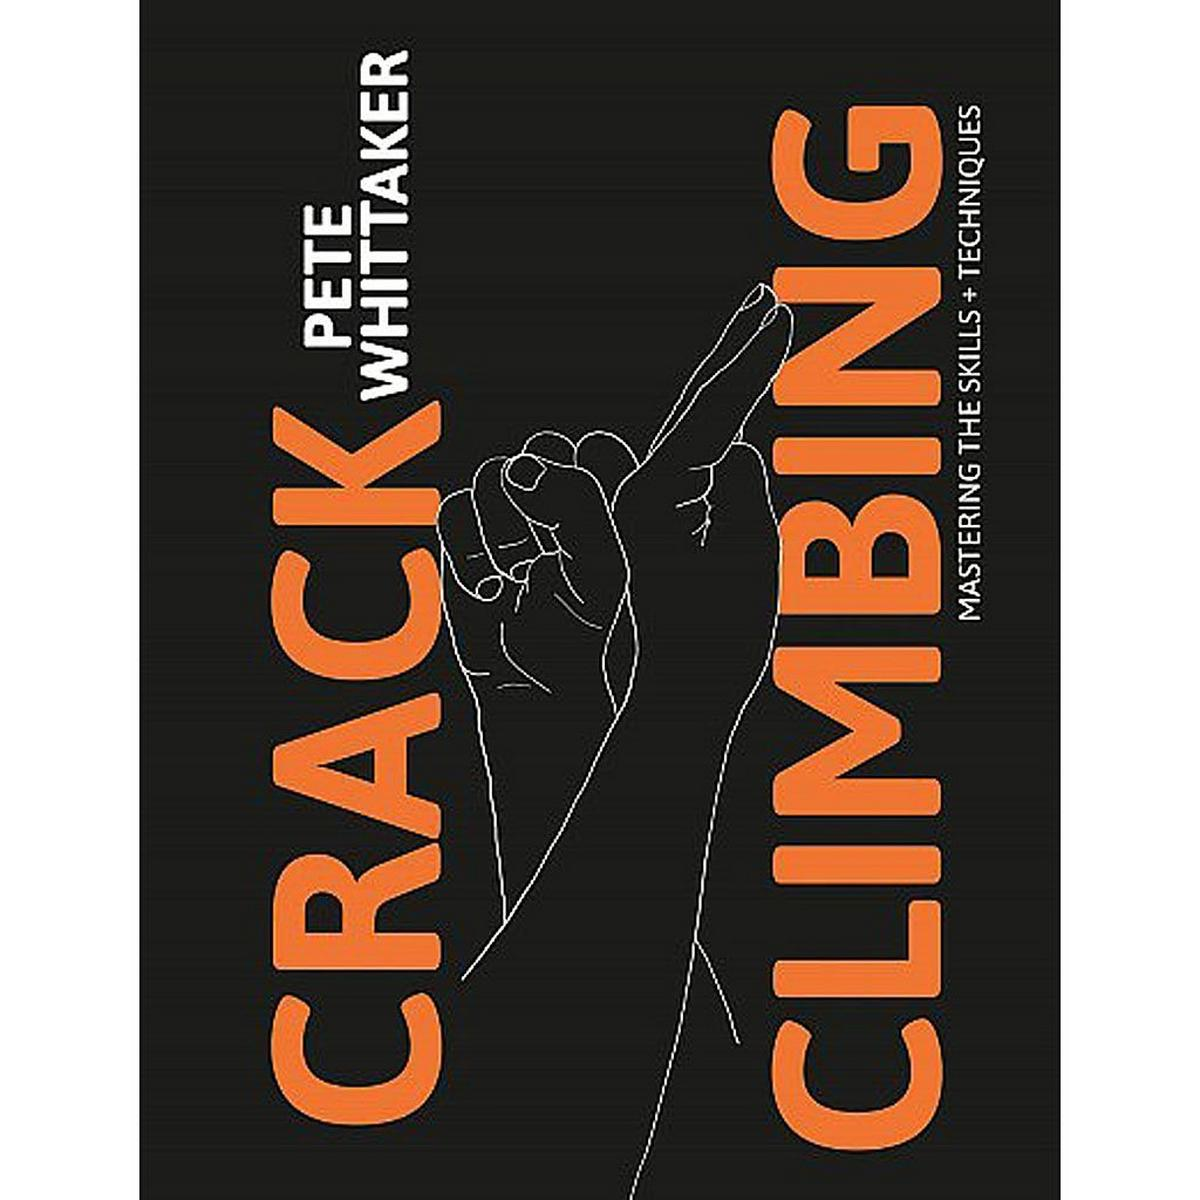 Cordee Book: Crack Climbing - Mastering the skills and techniques: Pete Whittaker